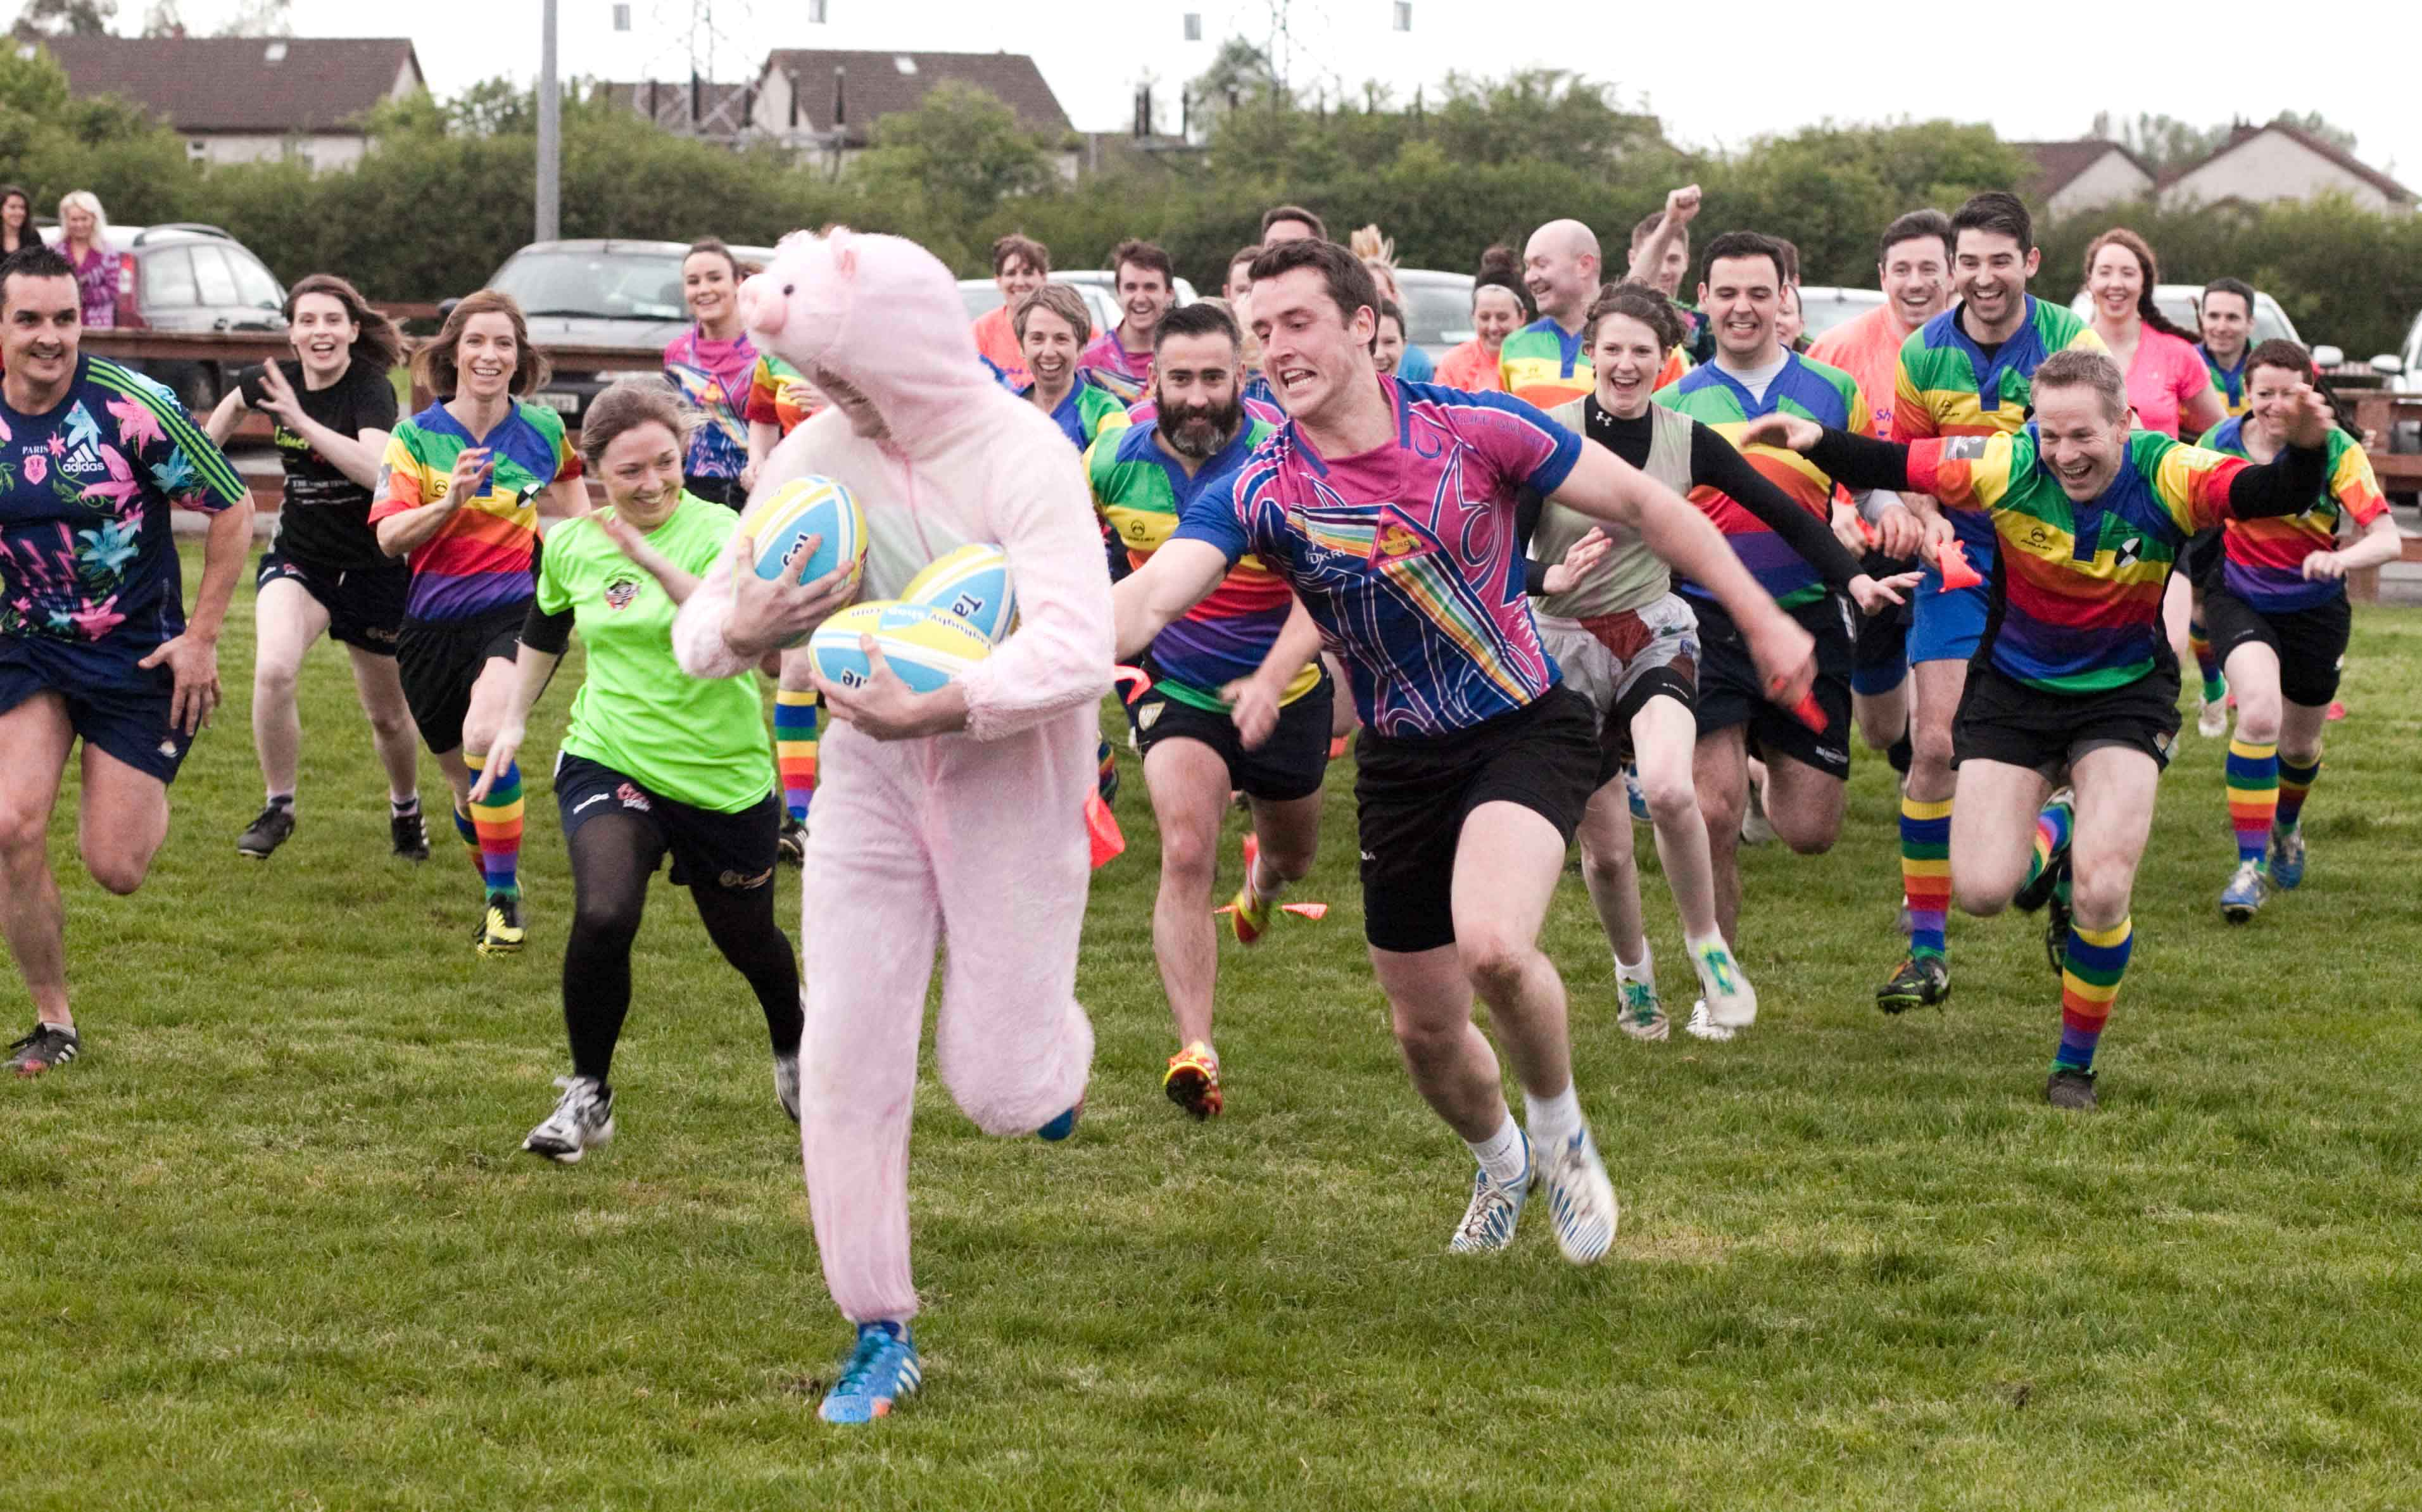 Pig 'n Porter Tag Rugby .  At the launch of the Pig n Porter 3 day international festival of Tag Rugby which will attract 2,500 players at Old Crescent Rugby club, Limerick.-  Picture: Kieran Clancy     15/5/2014